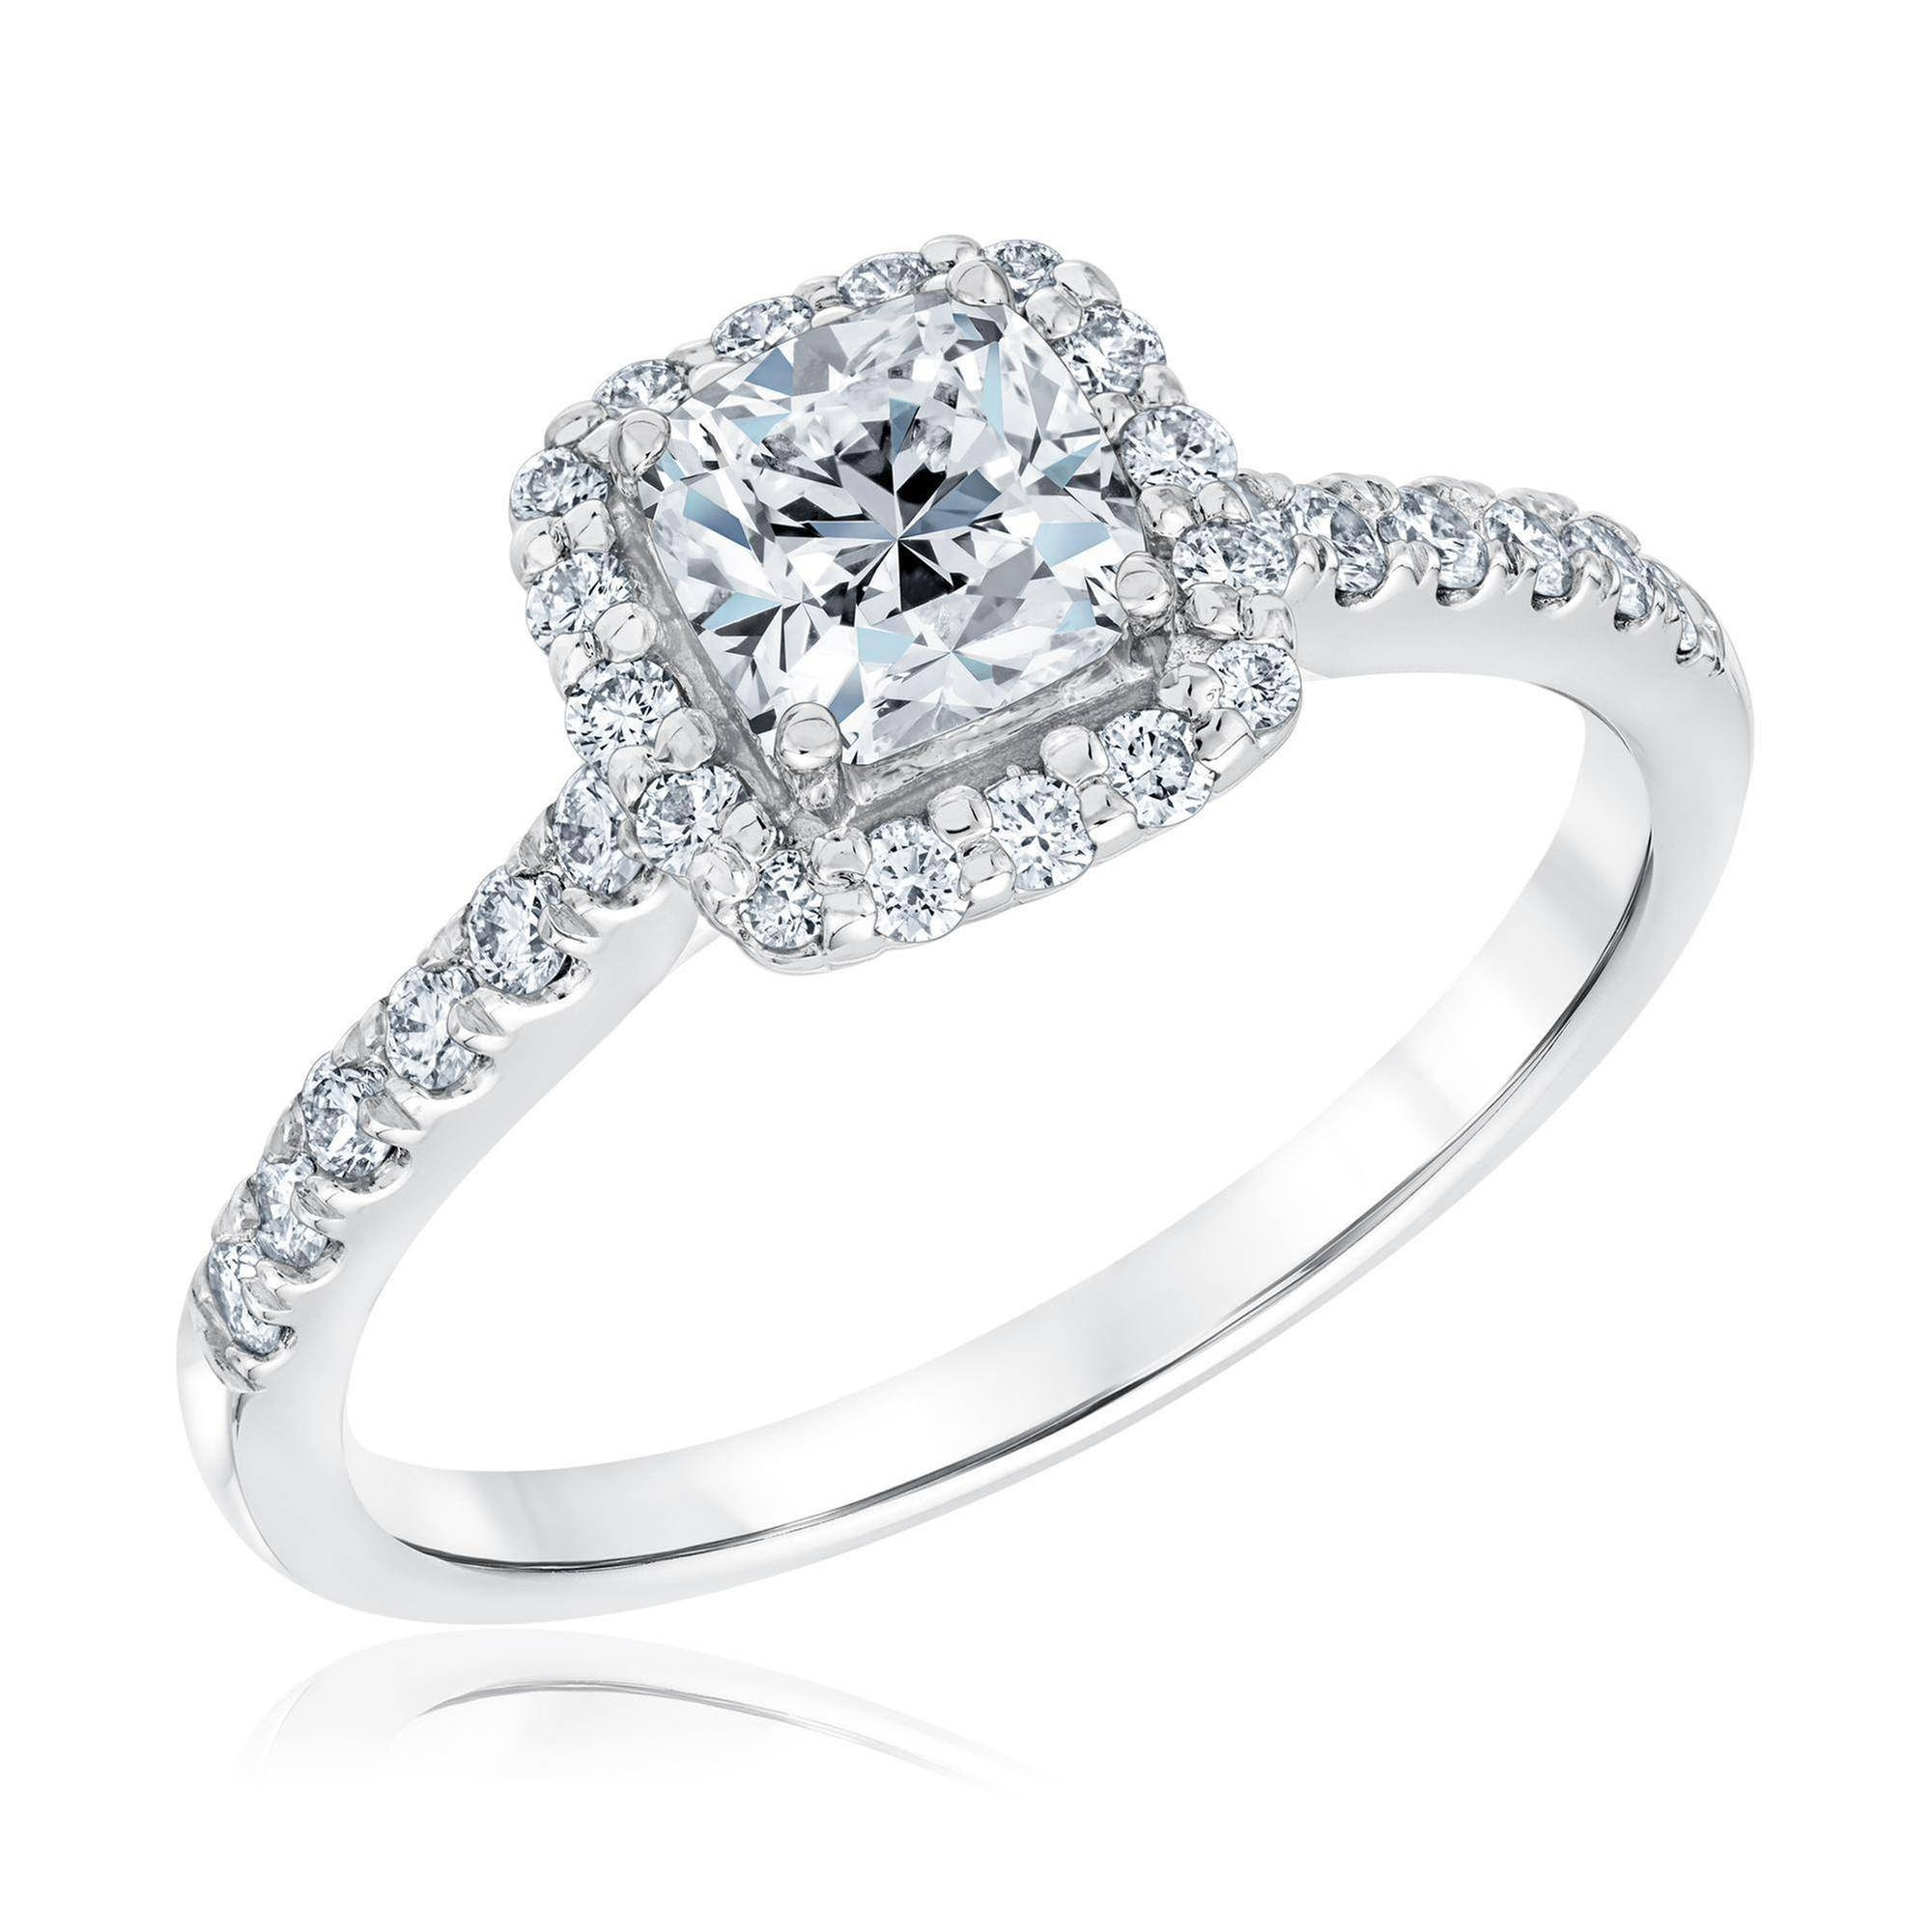 for diamondswhite lane rings is appealing greatest kay of trends ct shape files my best perfect image and the fiance diamond engagement ideas pear ring style tw neil gold